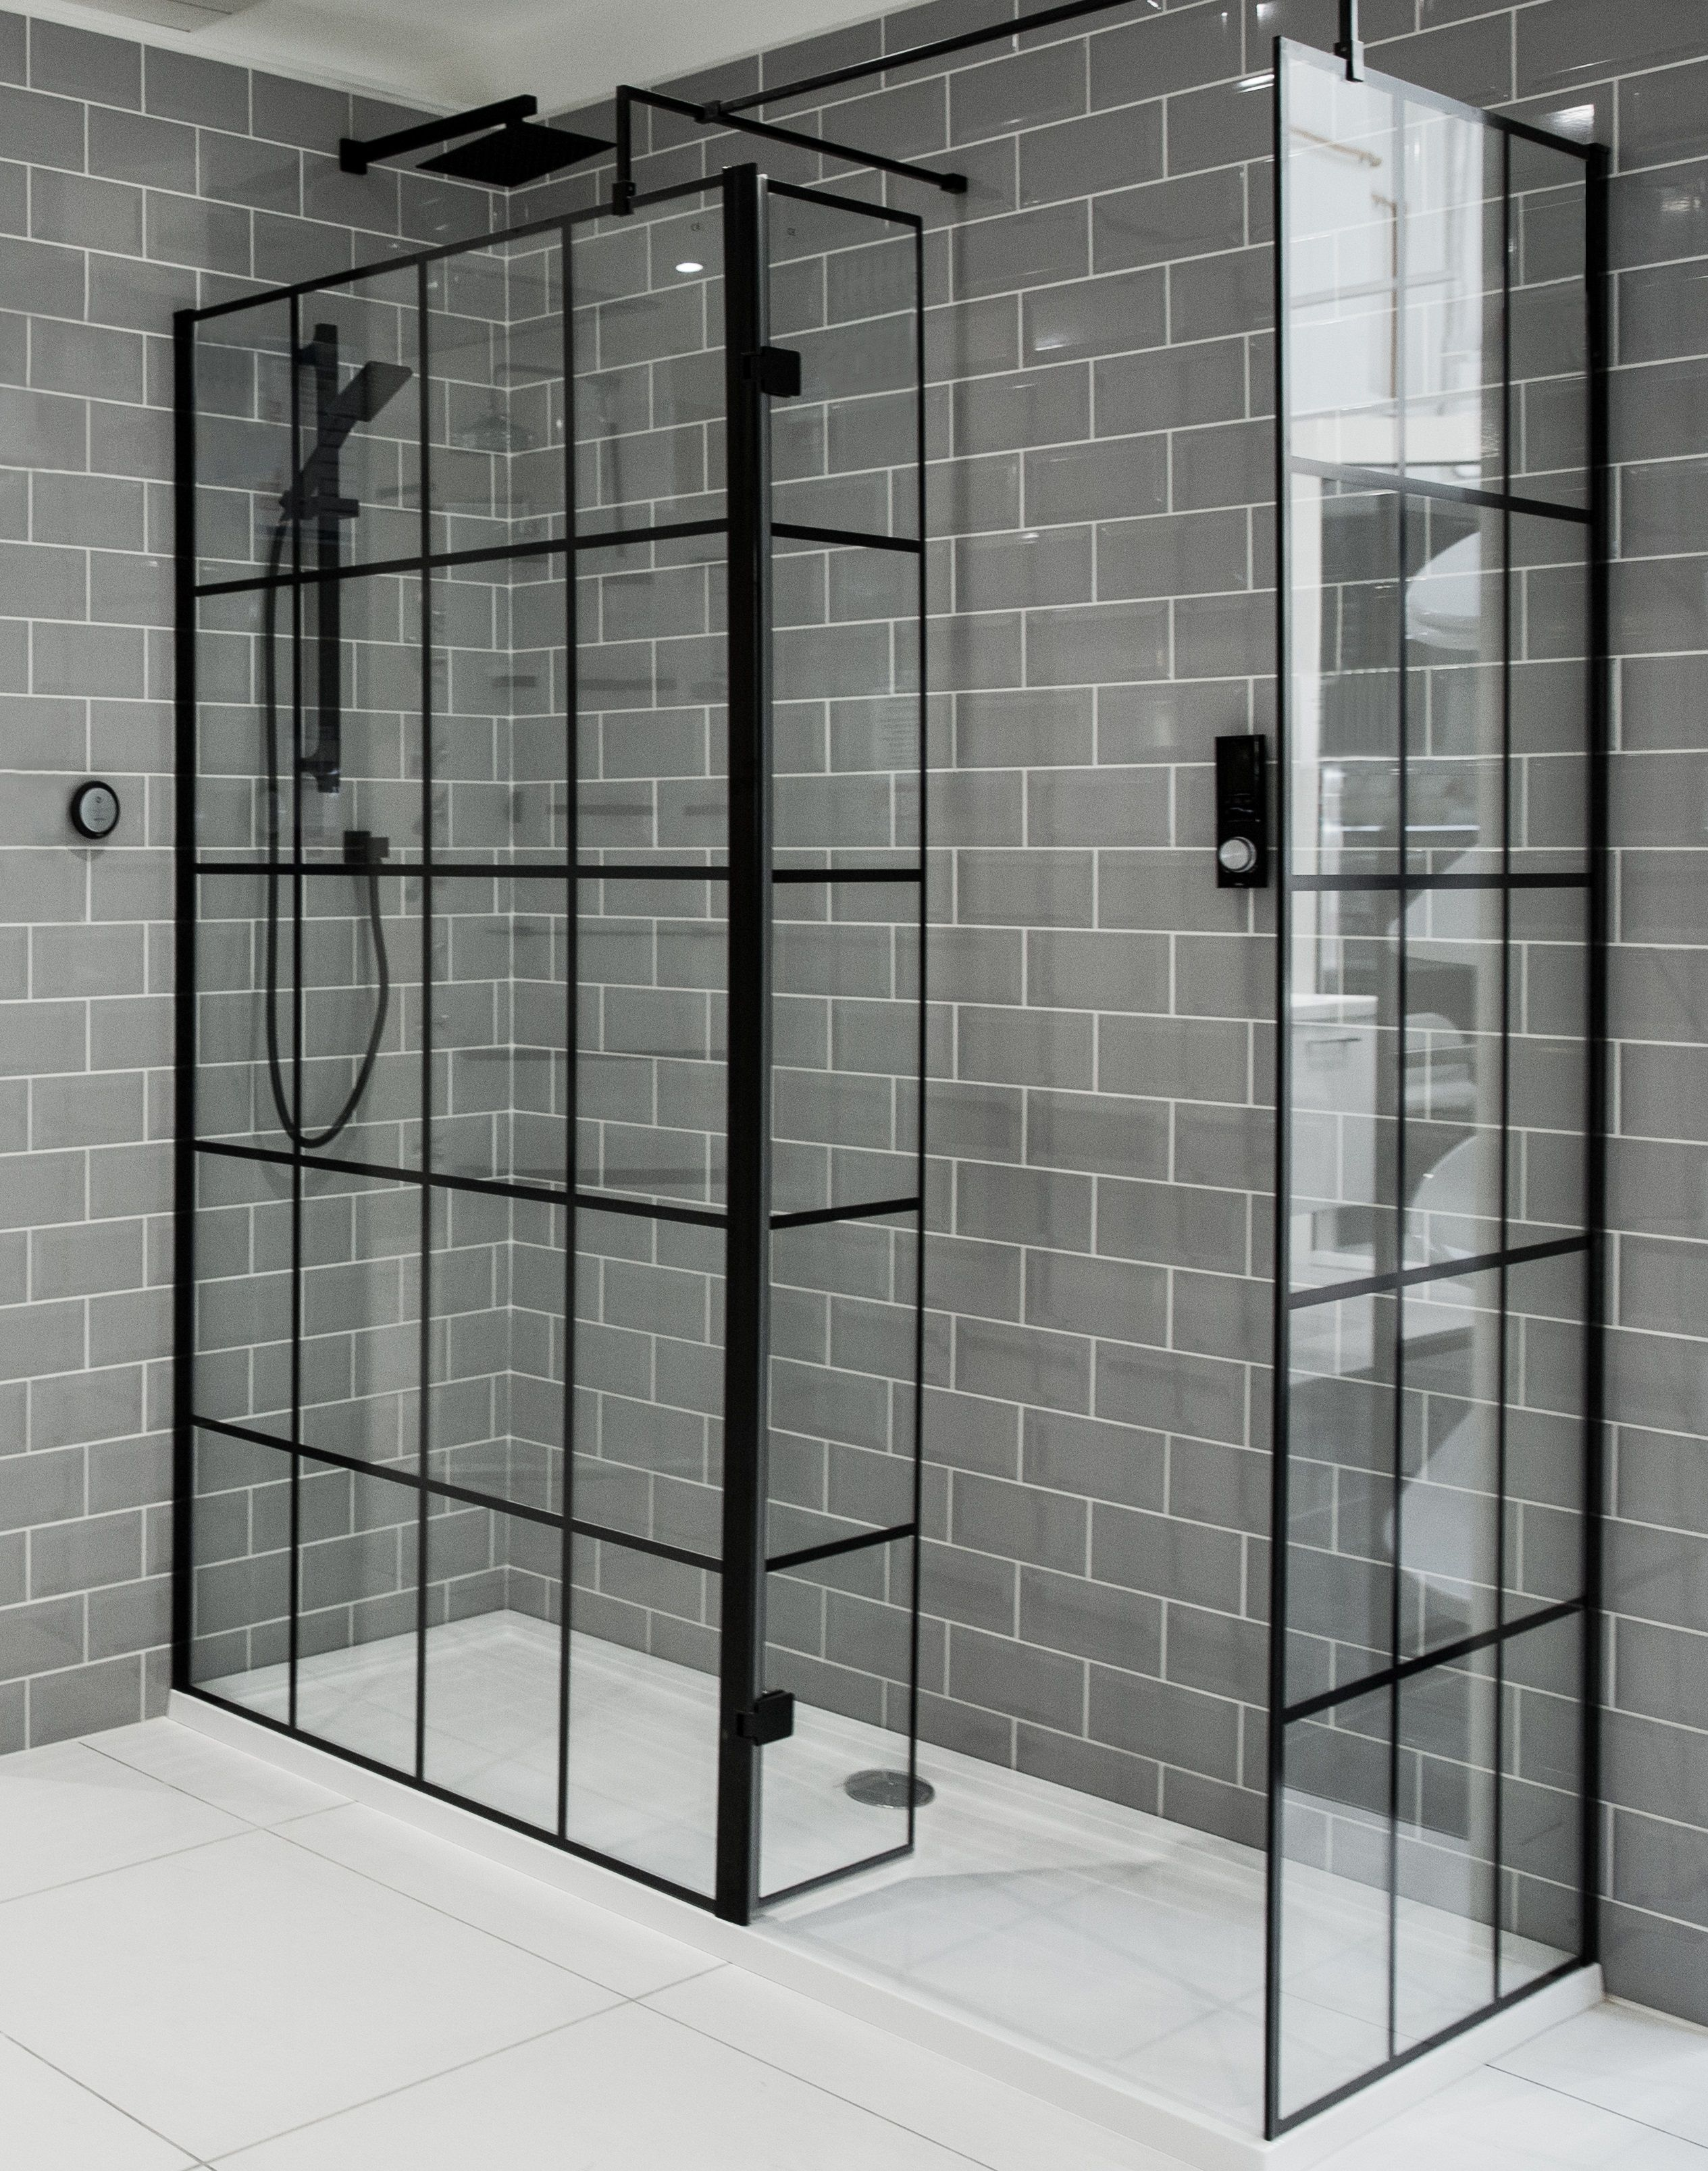 1950mm X 1200mm Walk In Black Framed Glass Shower Screen 8mm Black Tile Bathrooms Black Shower Doors Glass Shower